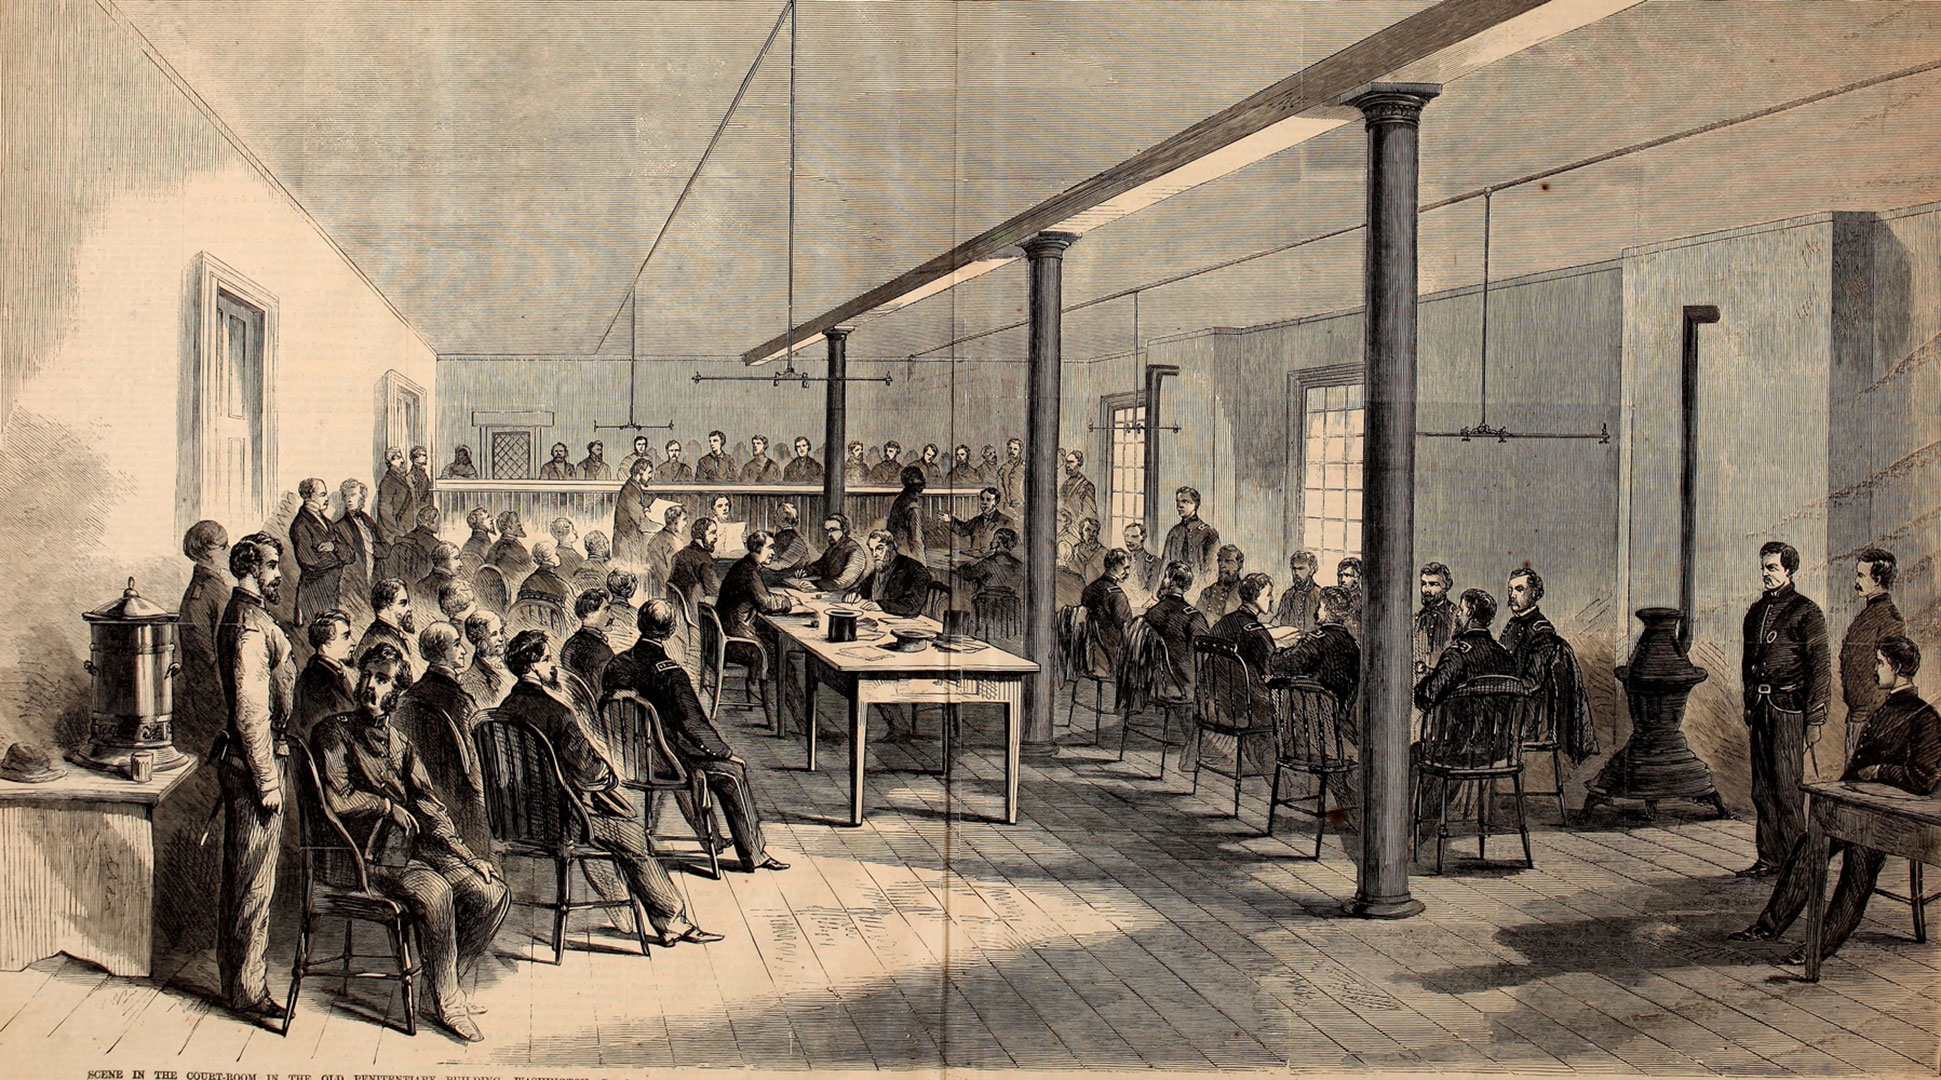 Illustration of more than 30 men gathered around tables and dozens more standing in a nearby gallery during the military tribunal for those accused of conspiracy in the Lincoln assassination.